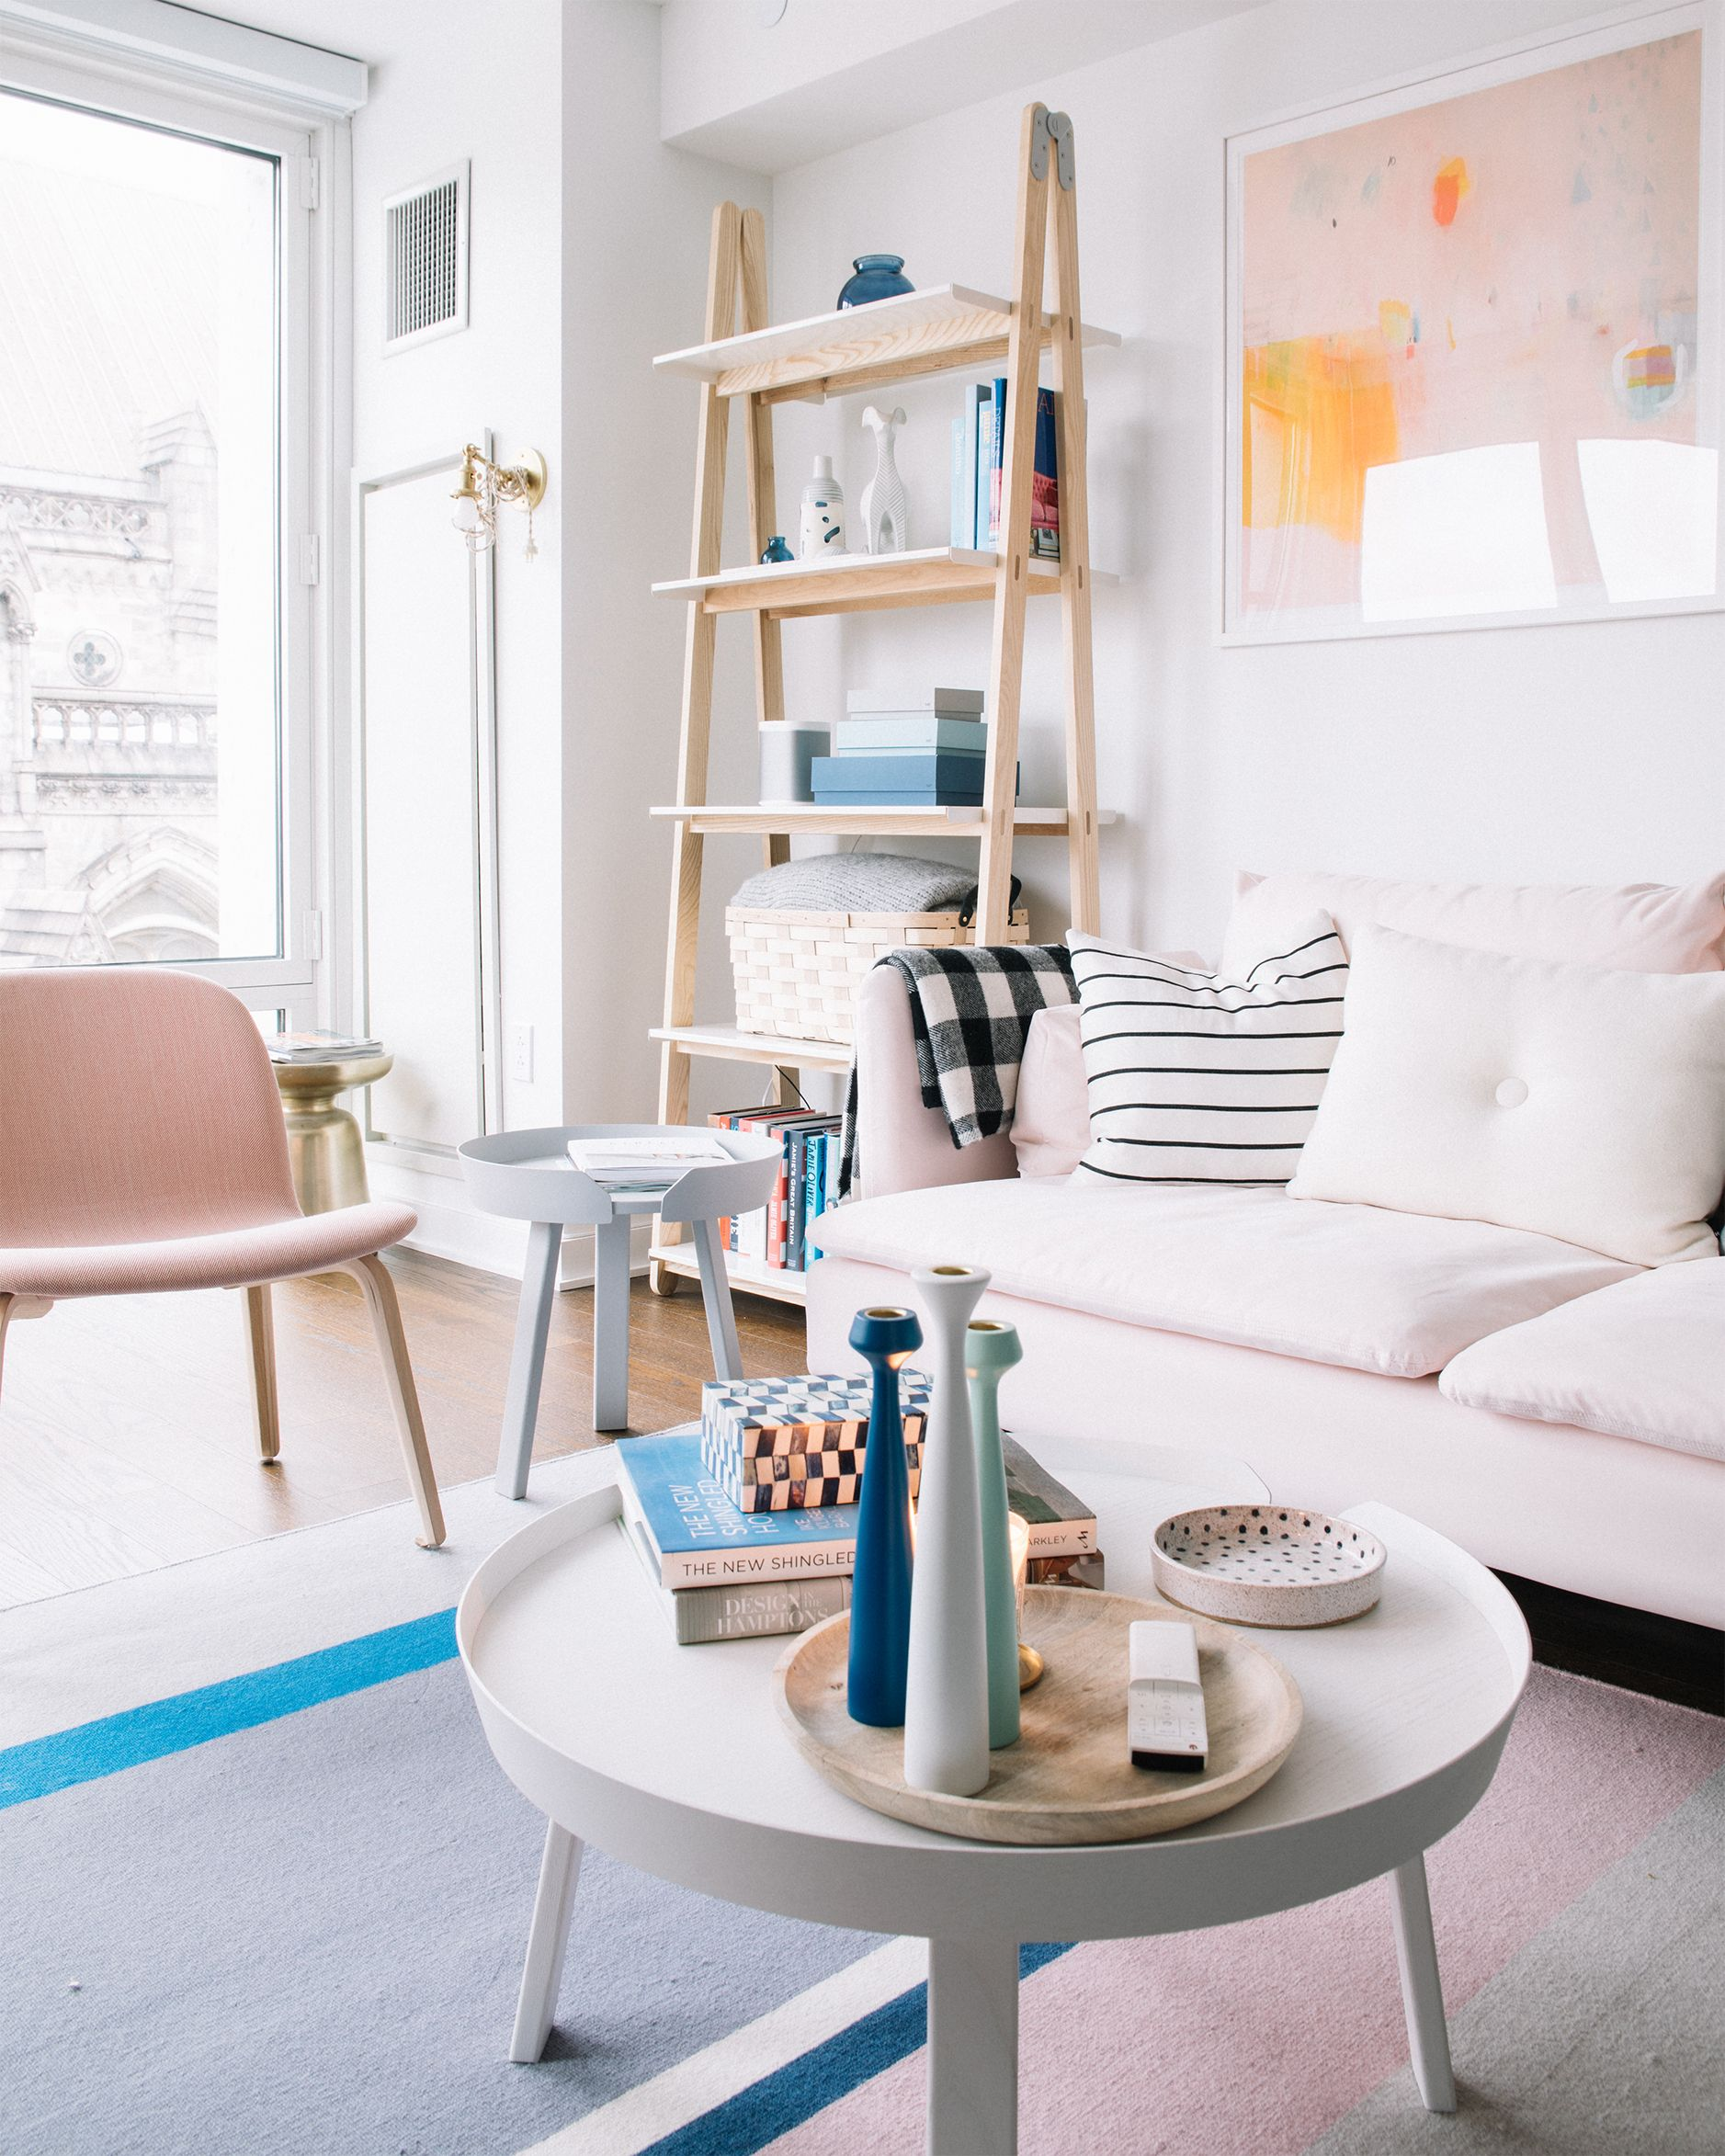 Millennial pink decorating ideas from my living room for My home interior